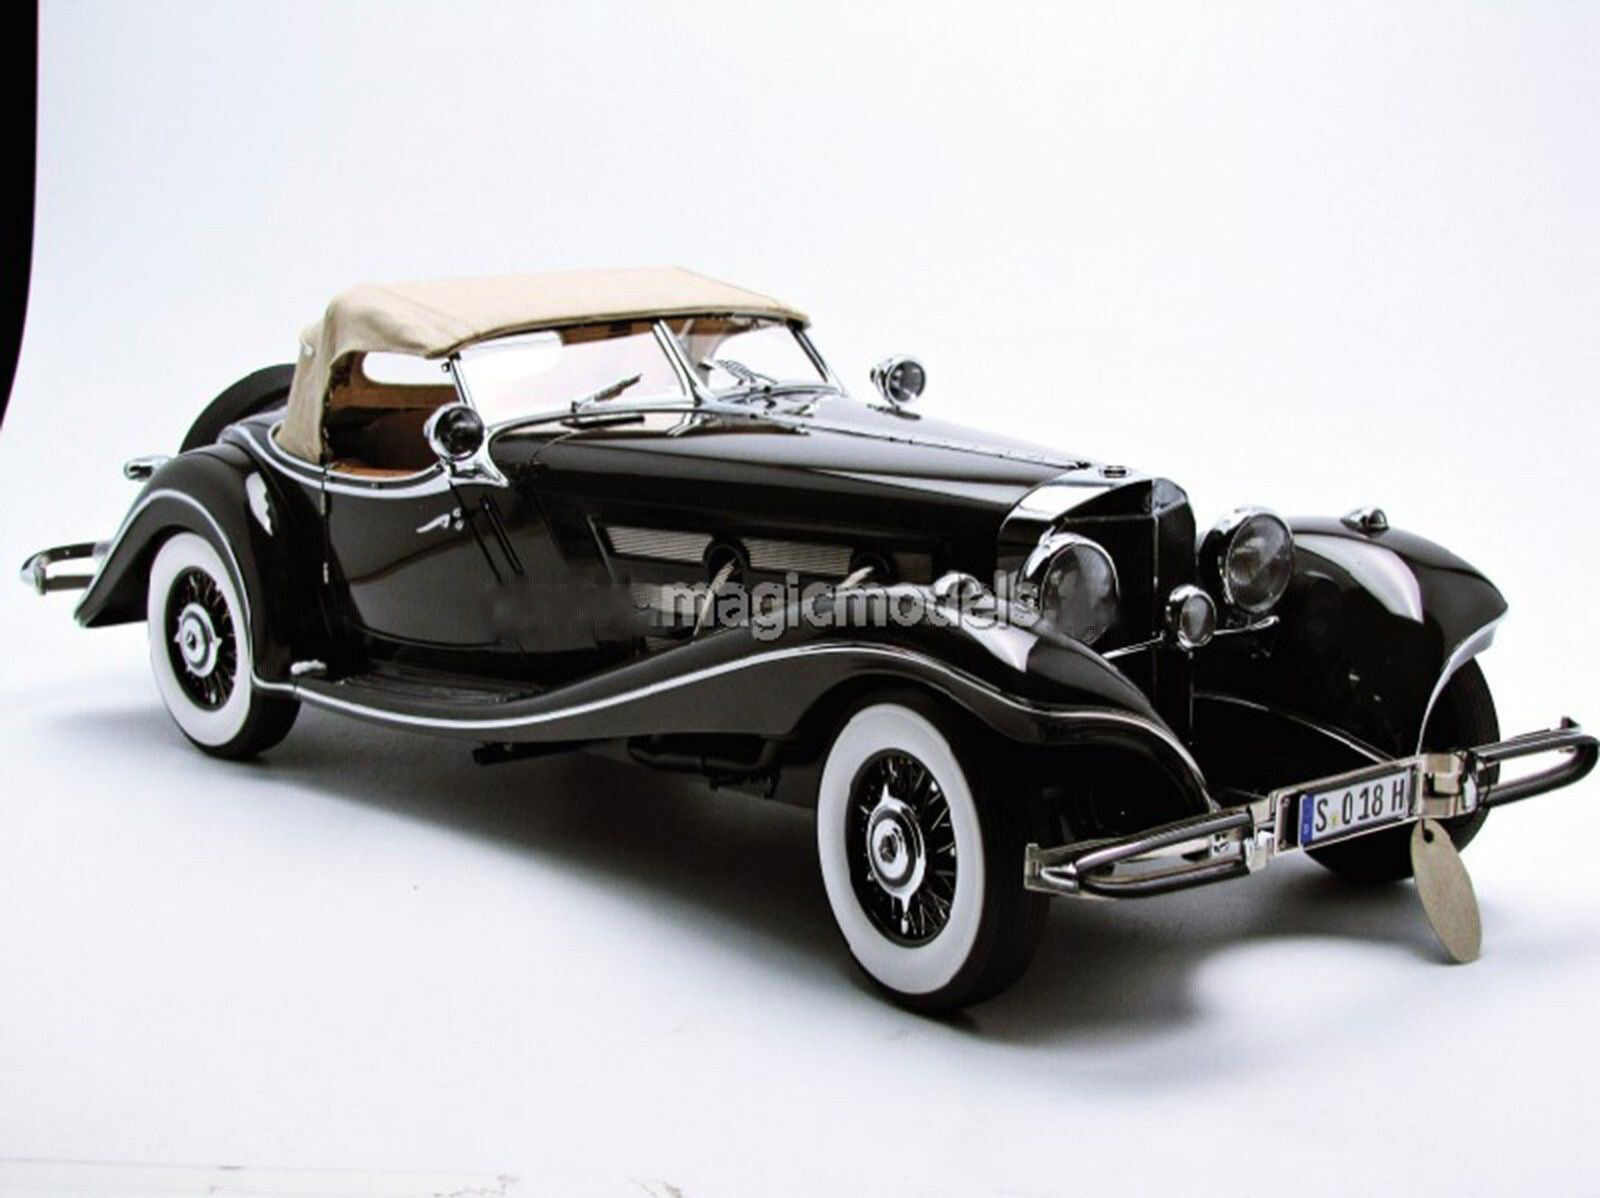 Bauer 1934 MERCEDES BENZ 500 K SPEZIAL ROADSTER LE of 2000 1/12 Scale HBS018H